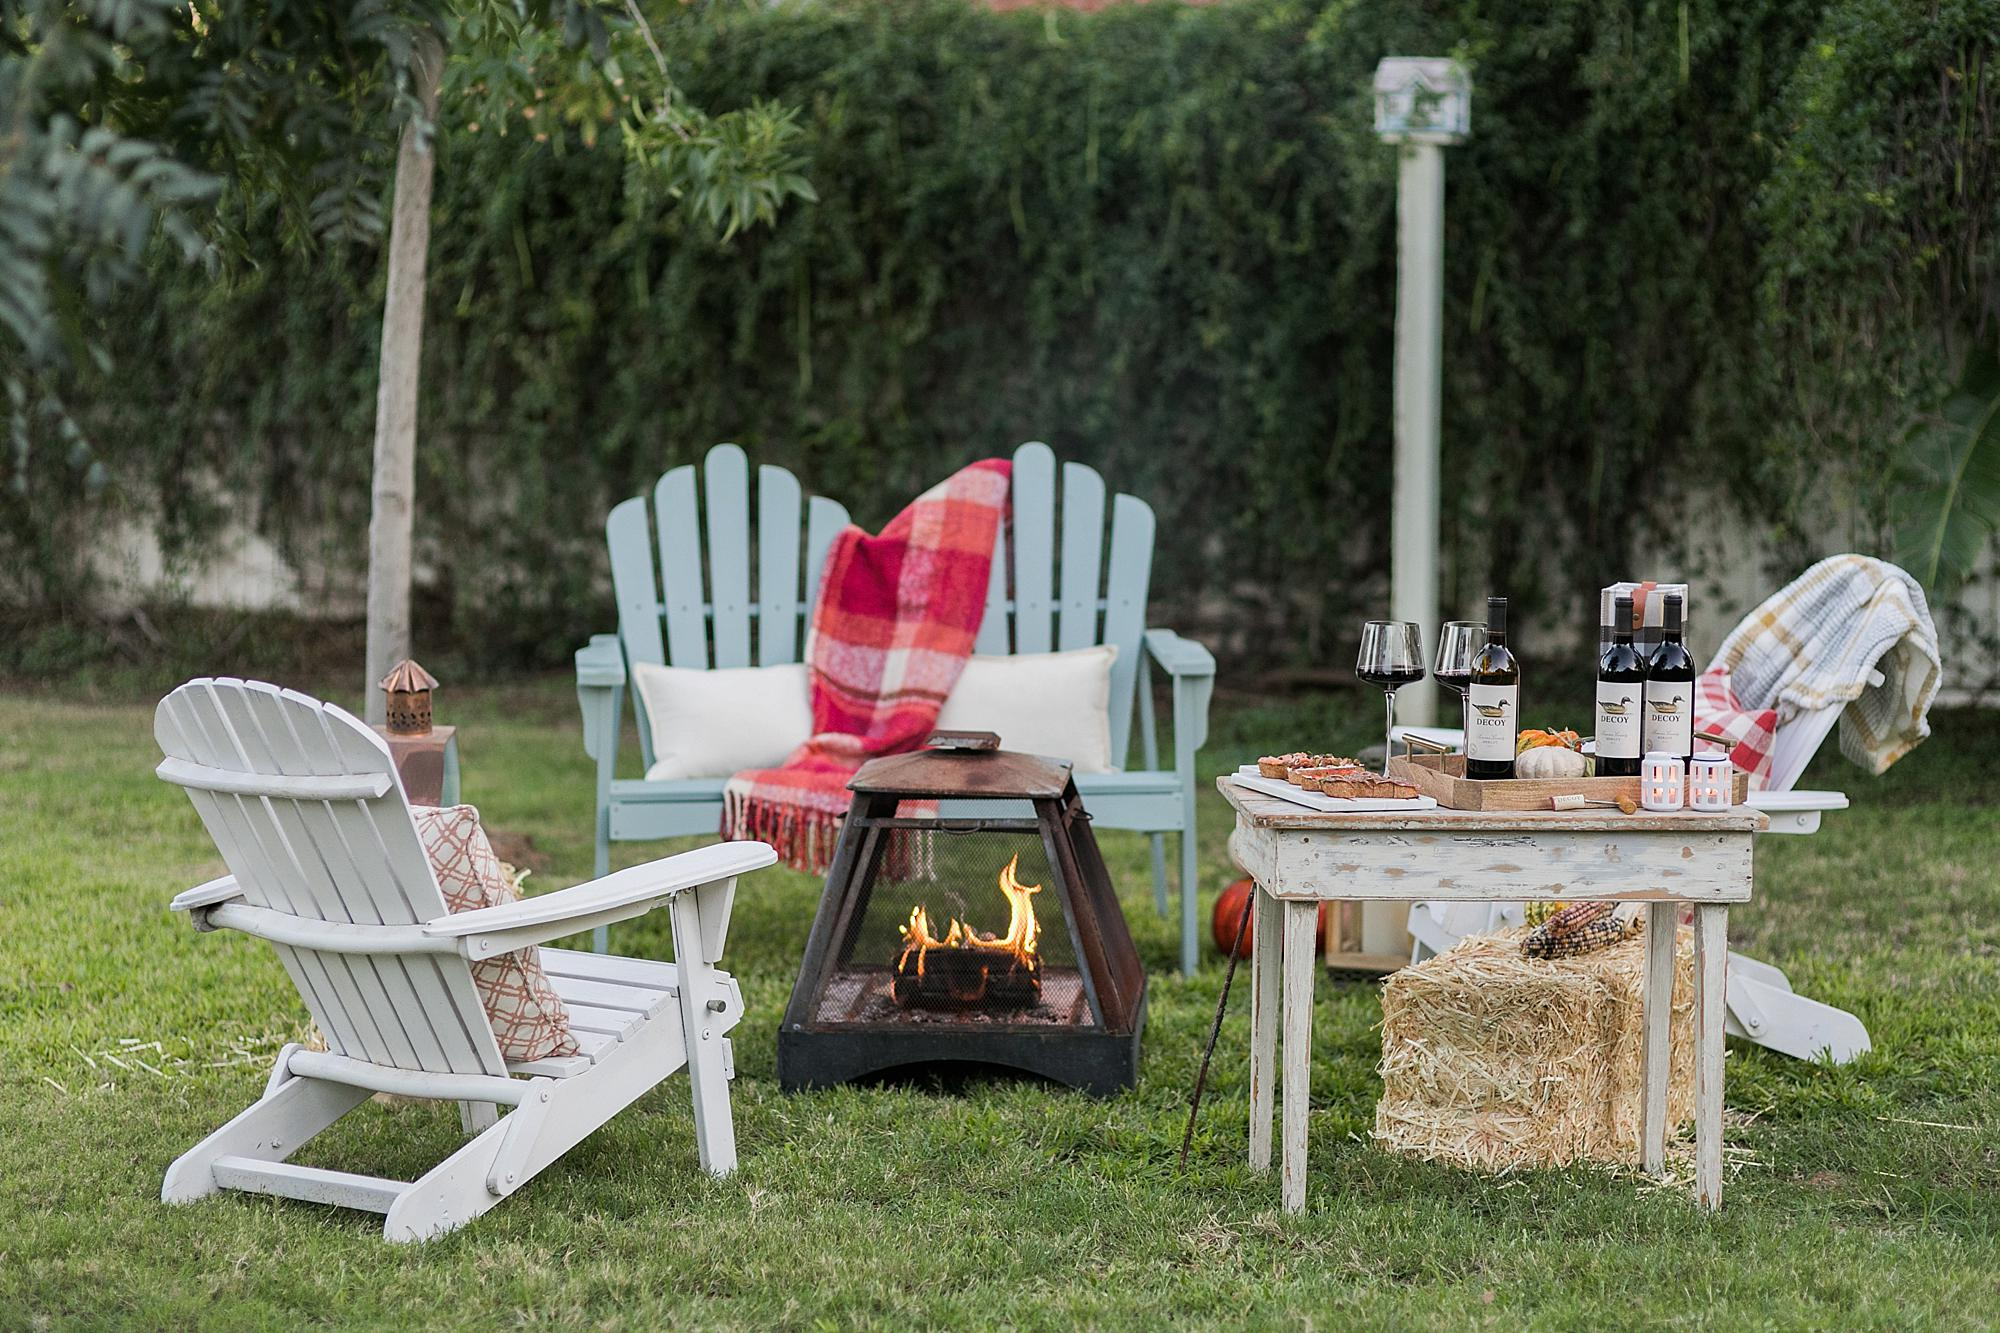 fall backyard gathering party outdoors with decoy wine merlot for October merlot month #wineparty #wine